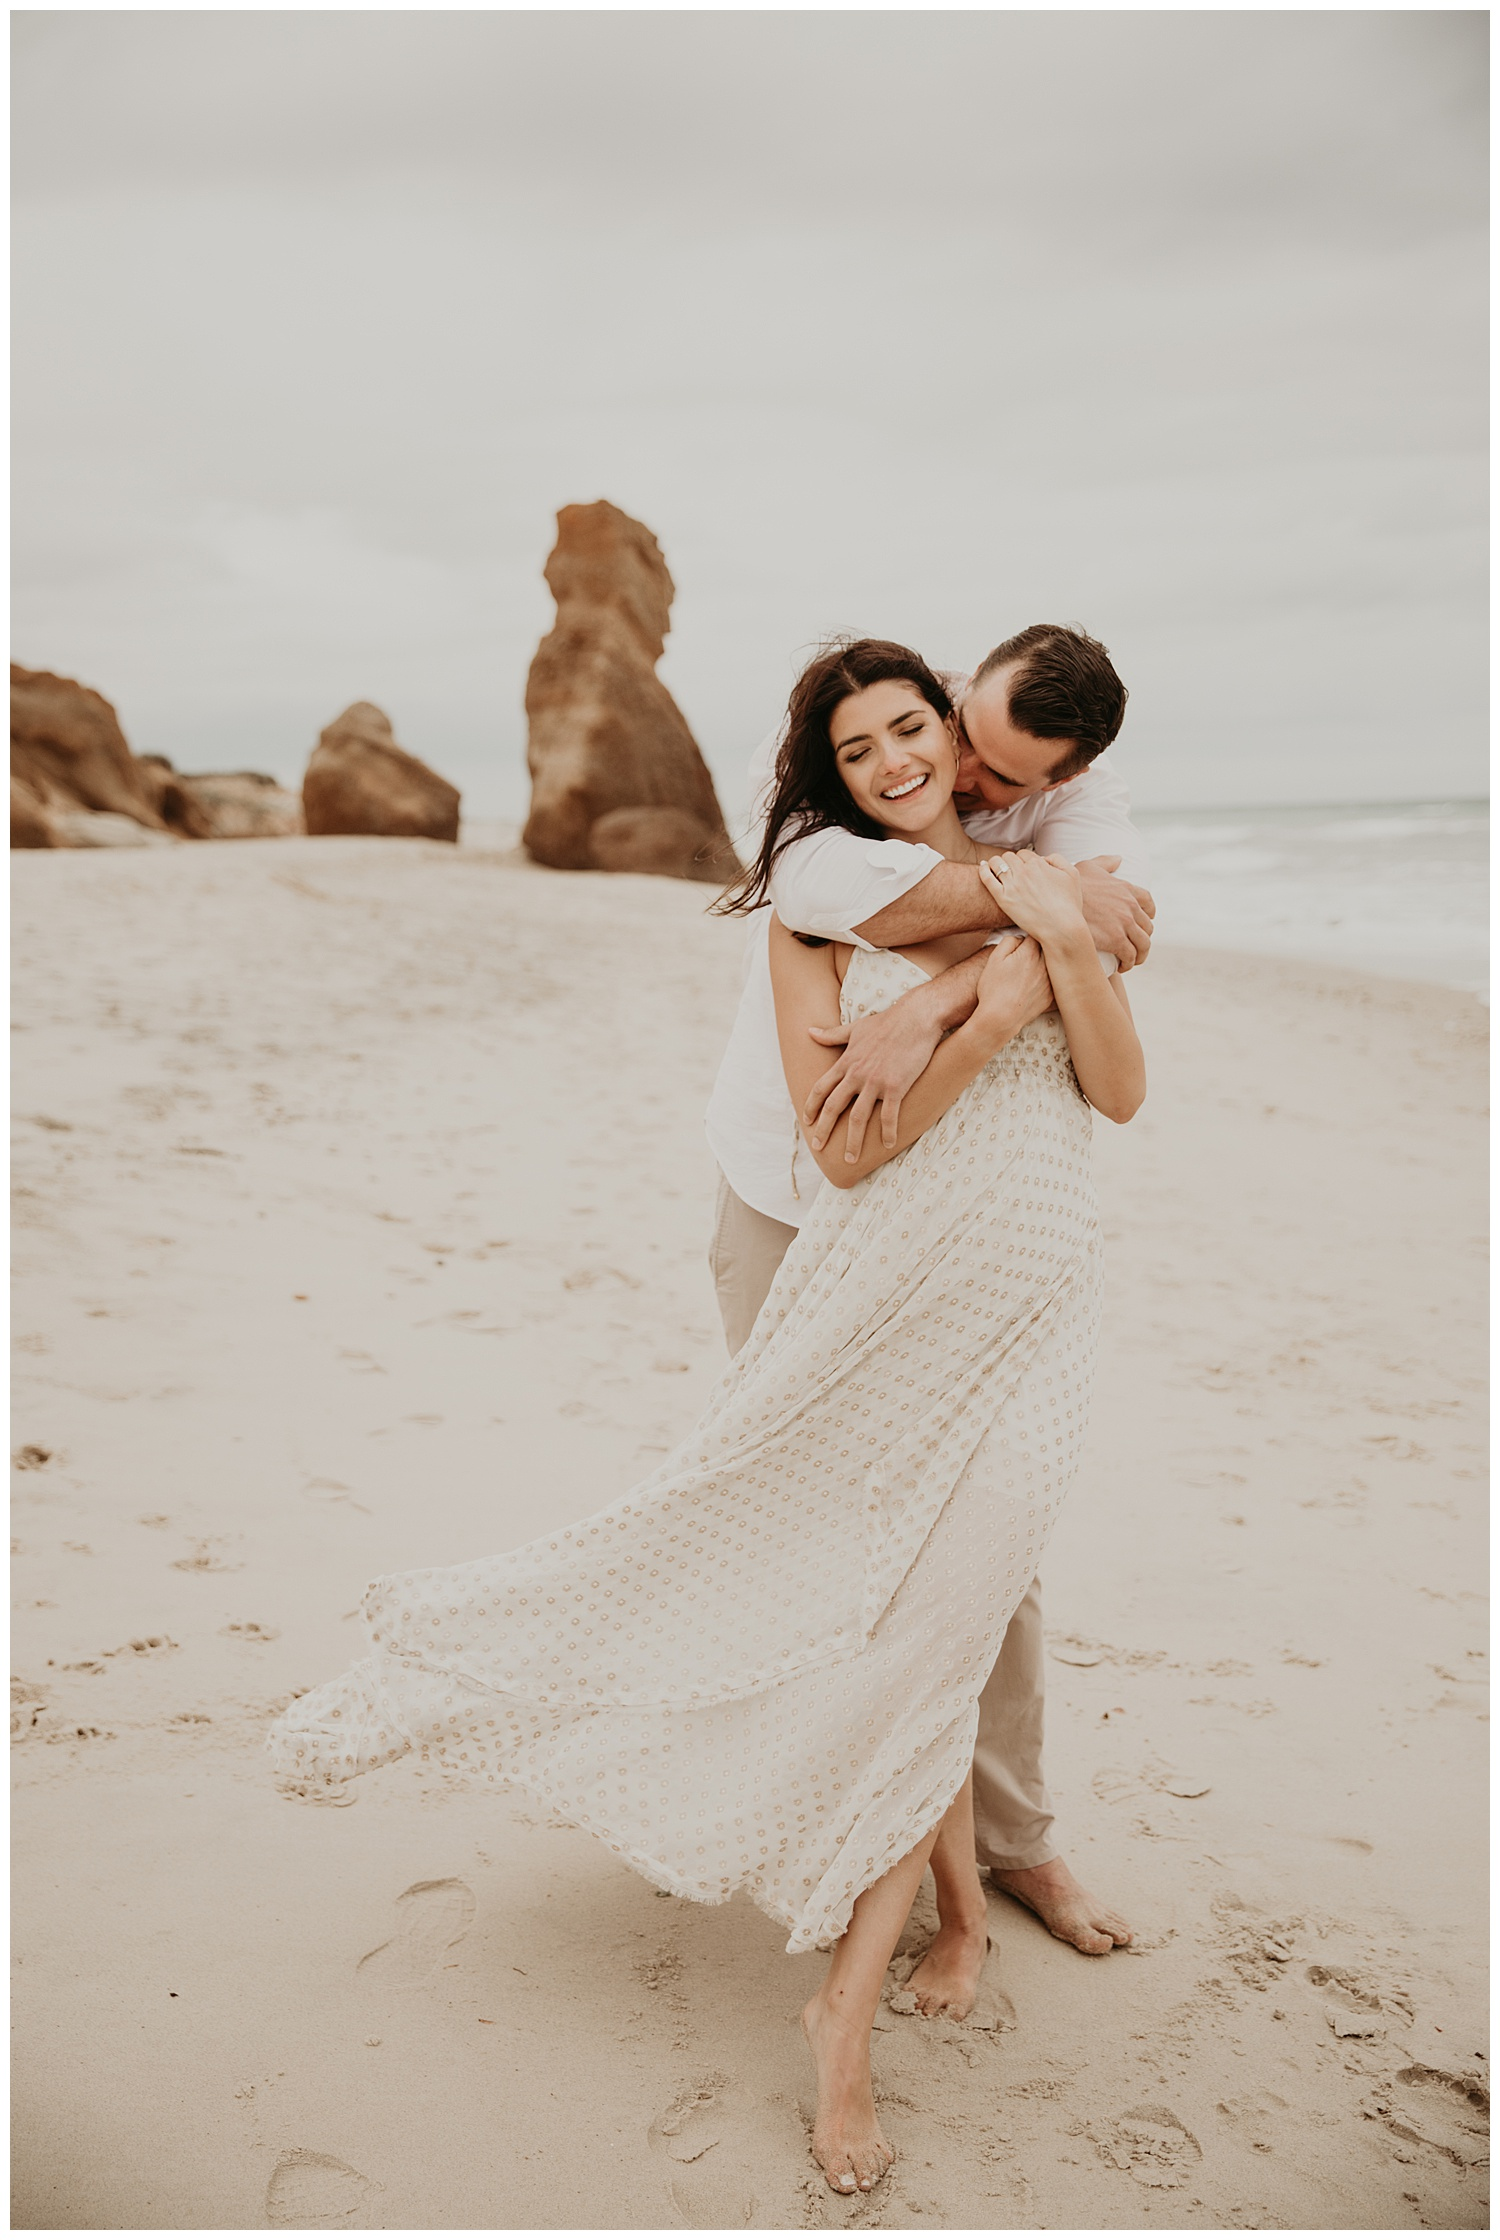 tim-olivia-beach-boho-engagement-session-marthas-vineyard-massachusetts22.jpg